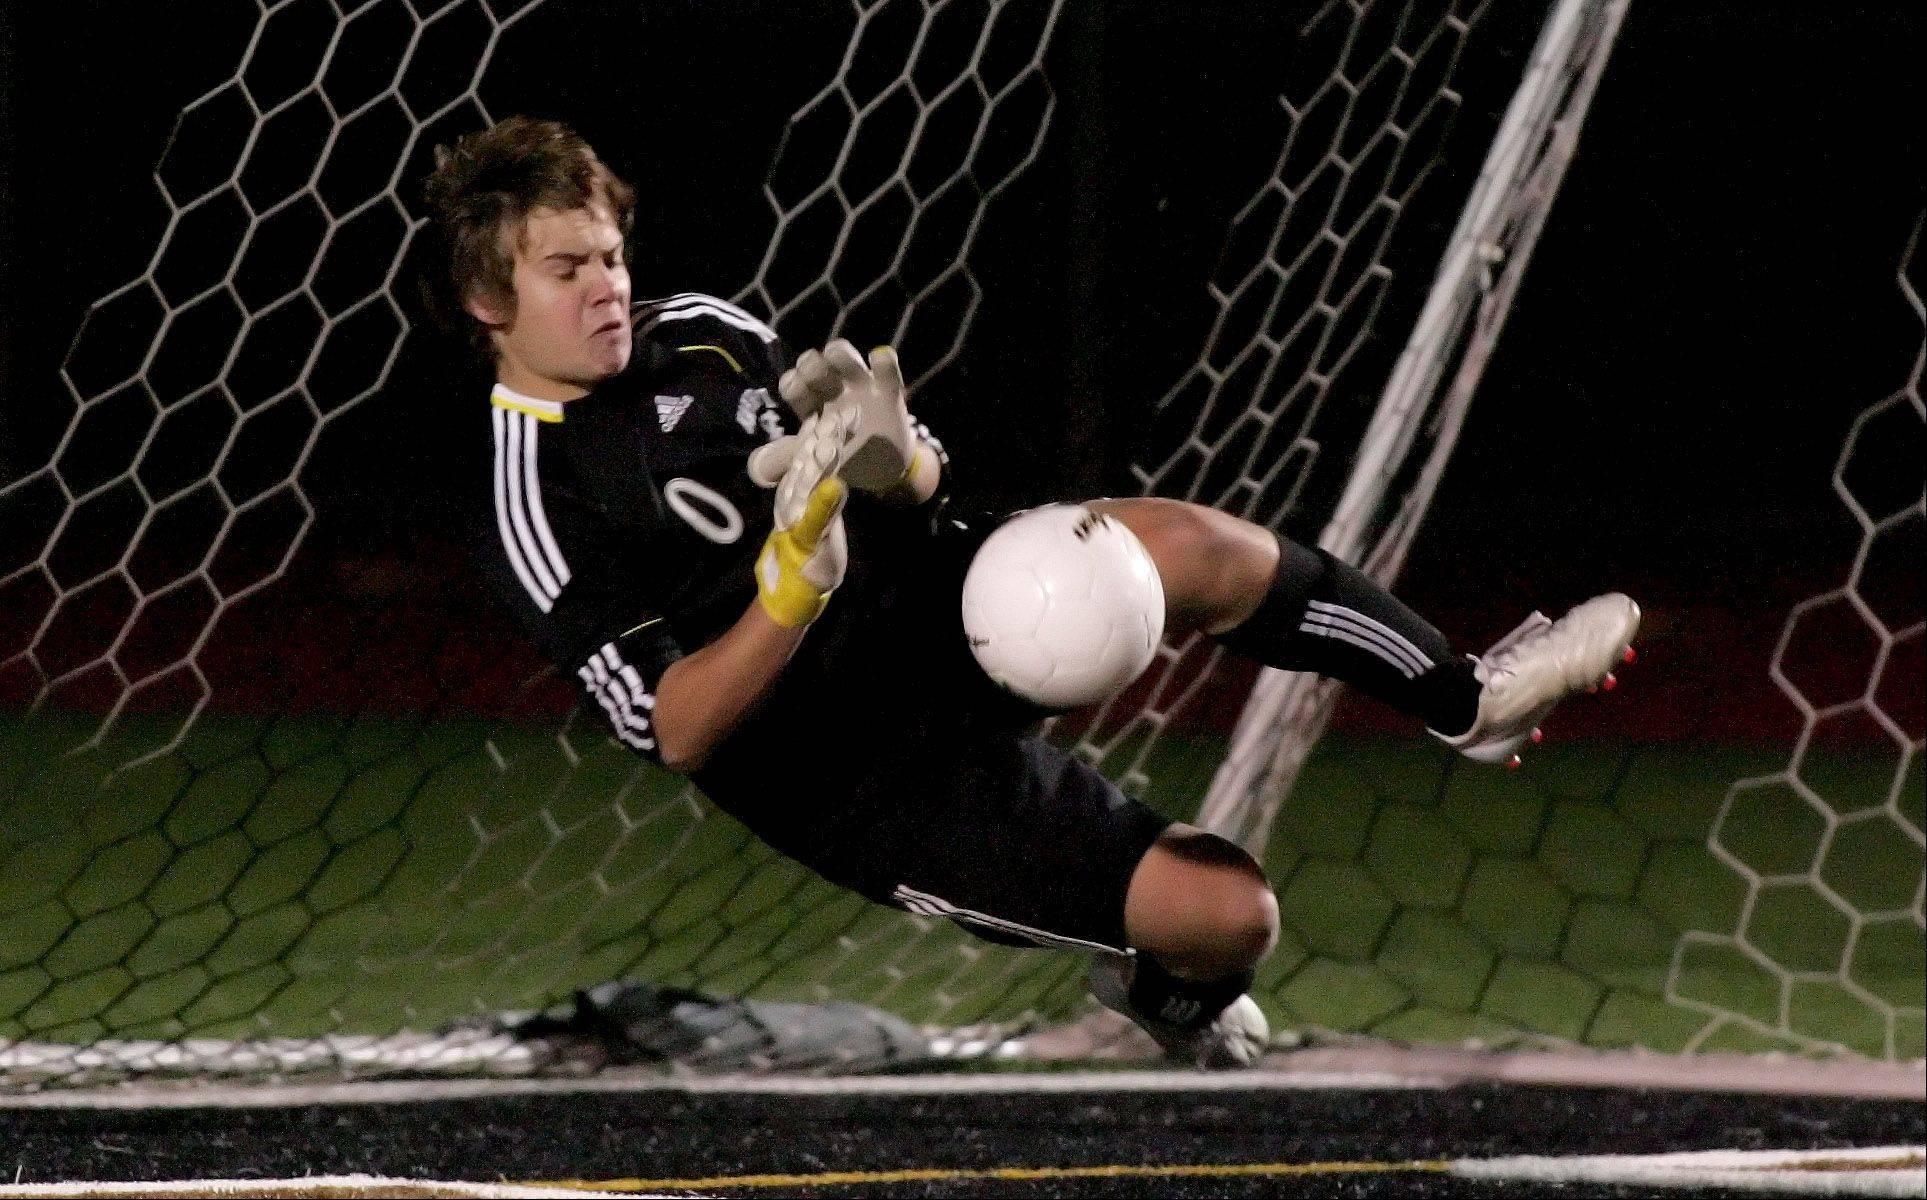 Mike Pavliga, goalkeeper for Naperville Central blocks a shot by Fremd during the shootout in Class 3A state soccer semifinals Friday at Lincoln-Way North High School in Frankfort. Naperville won 4-3